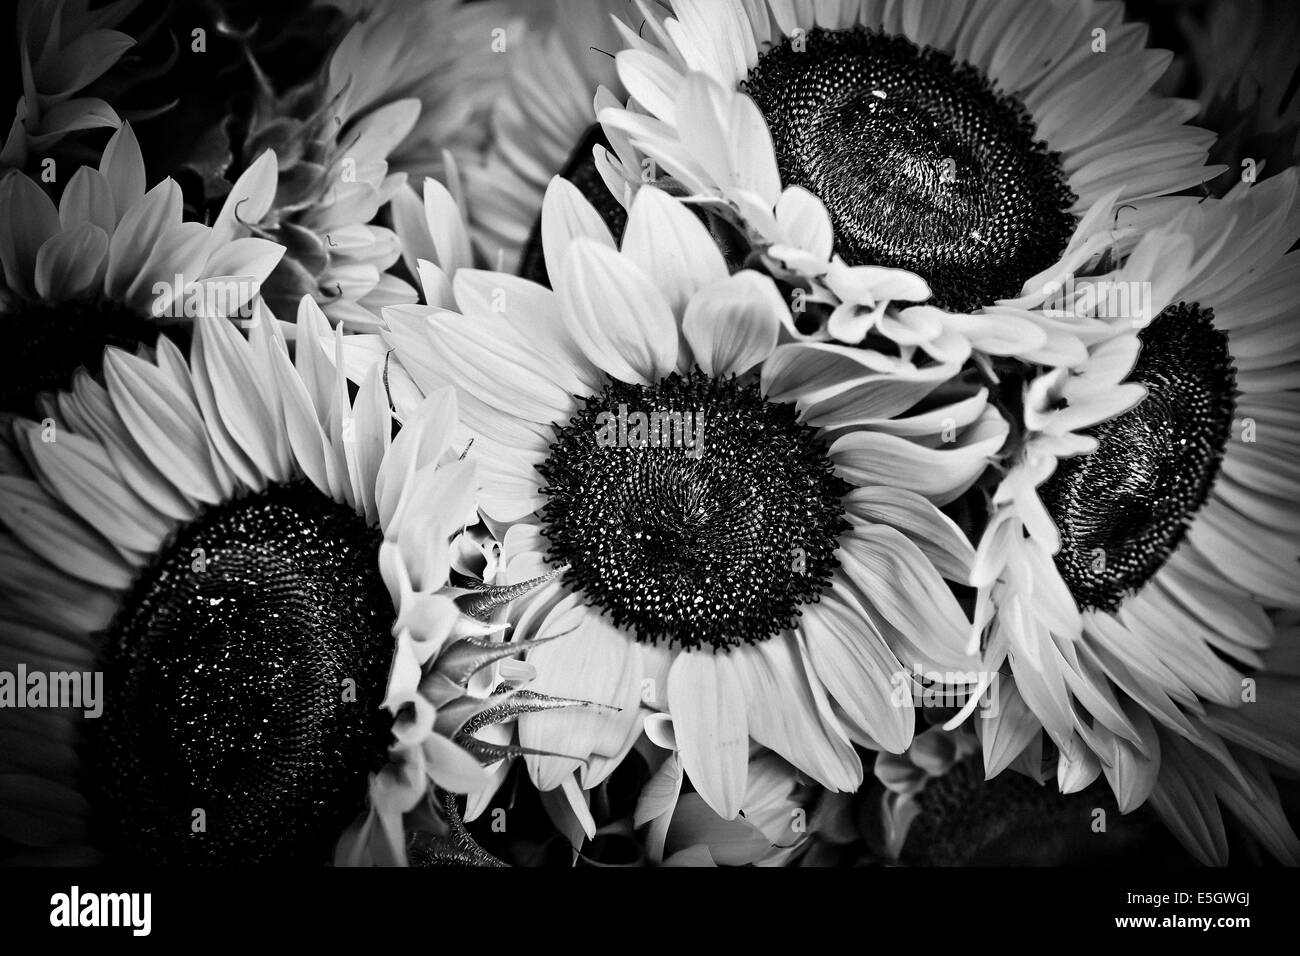 Bloomington Indiana Farmers Market Sunflowers Black And White Stock